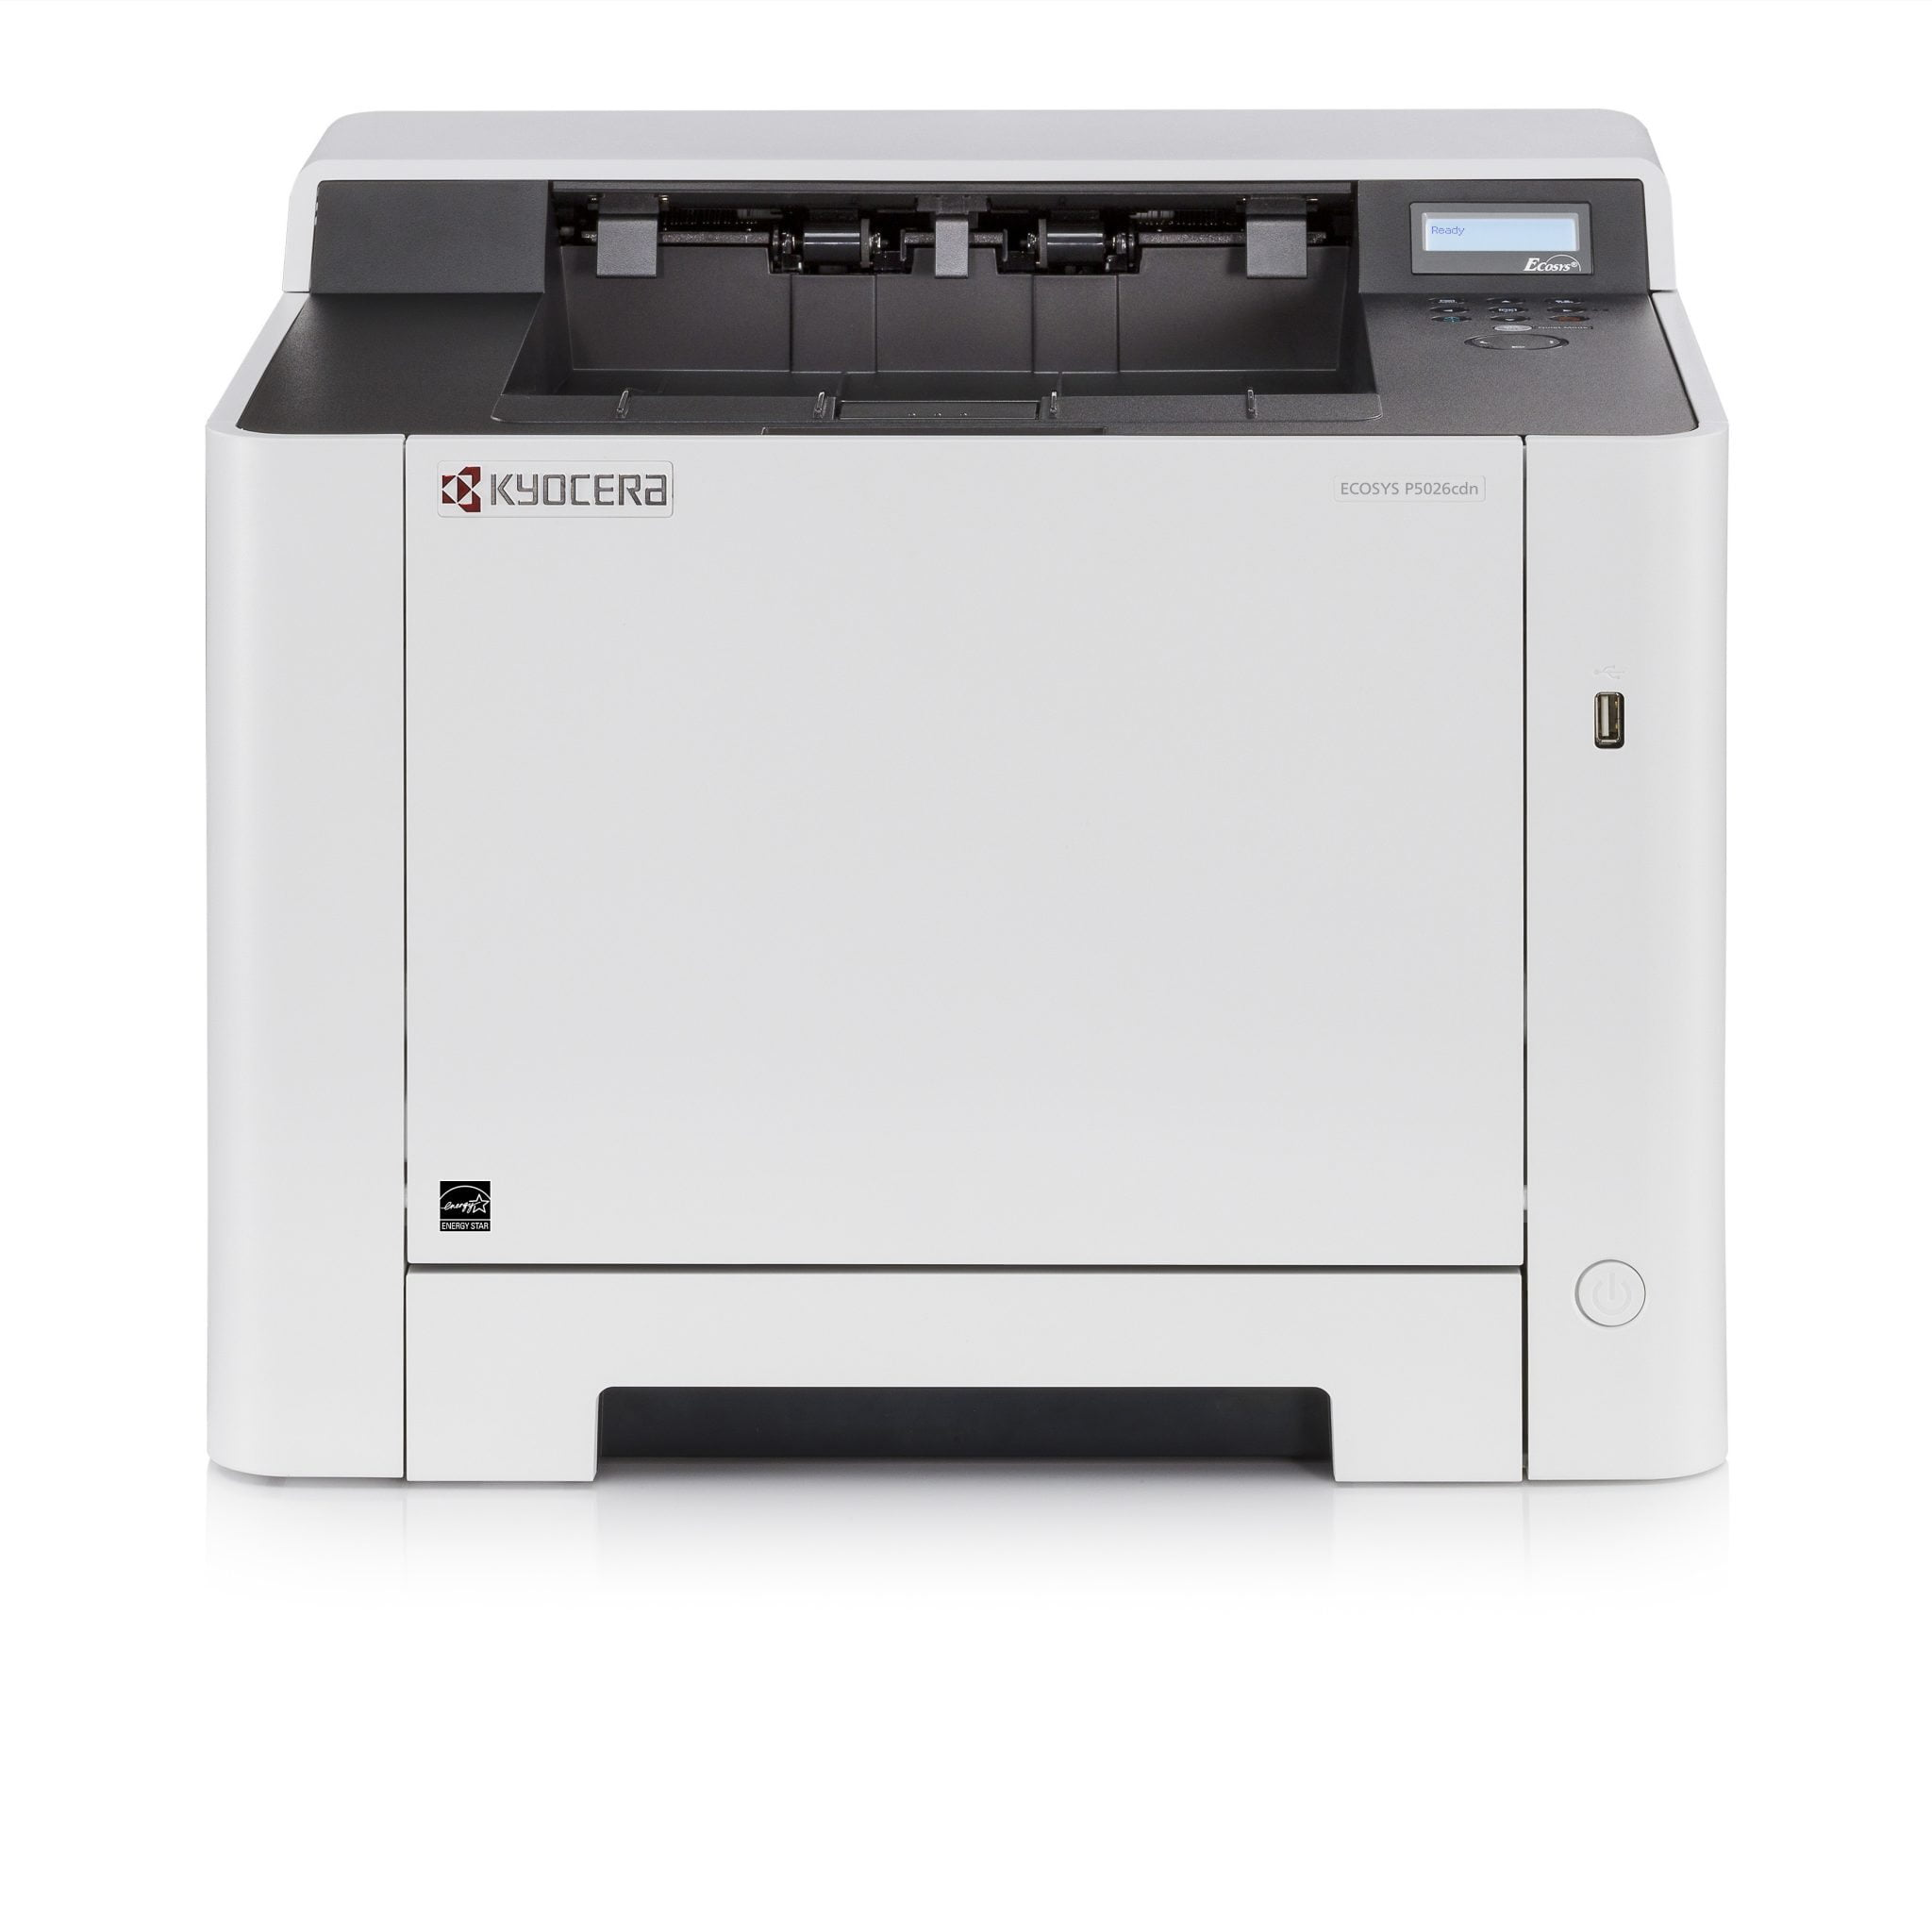 Kyocera ECOSYS P5026cdn Colour Laser Printer